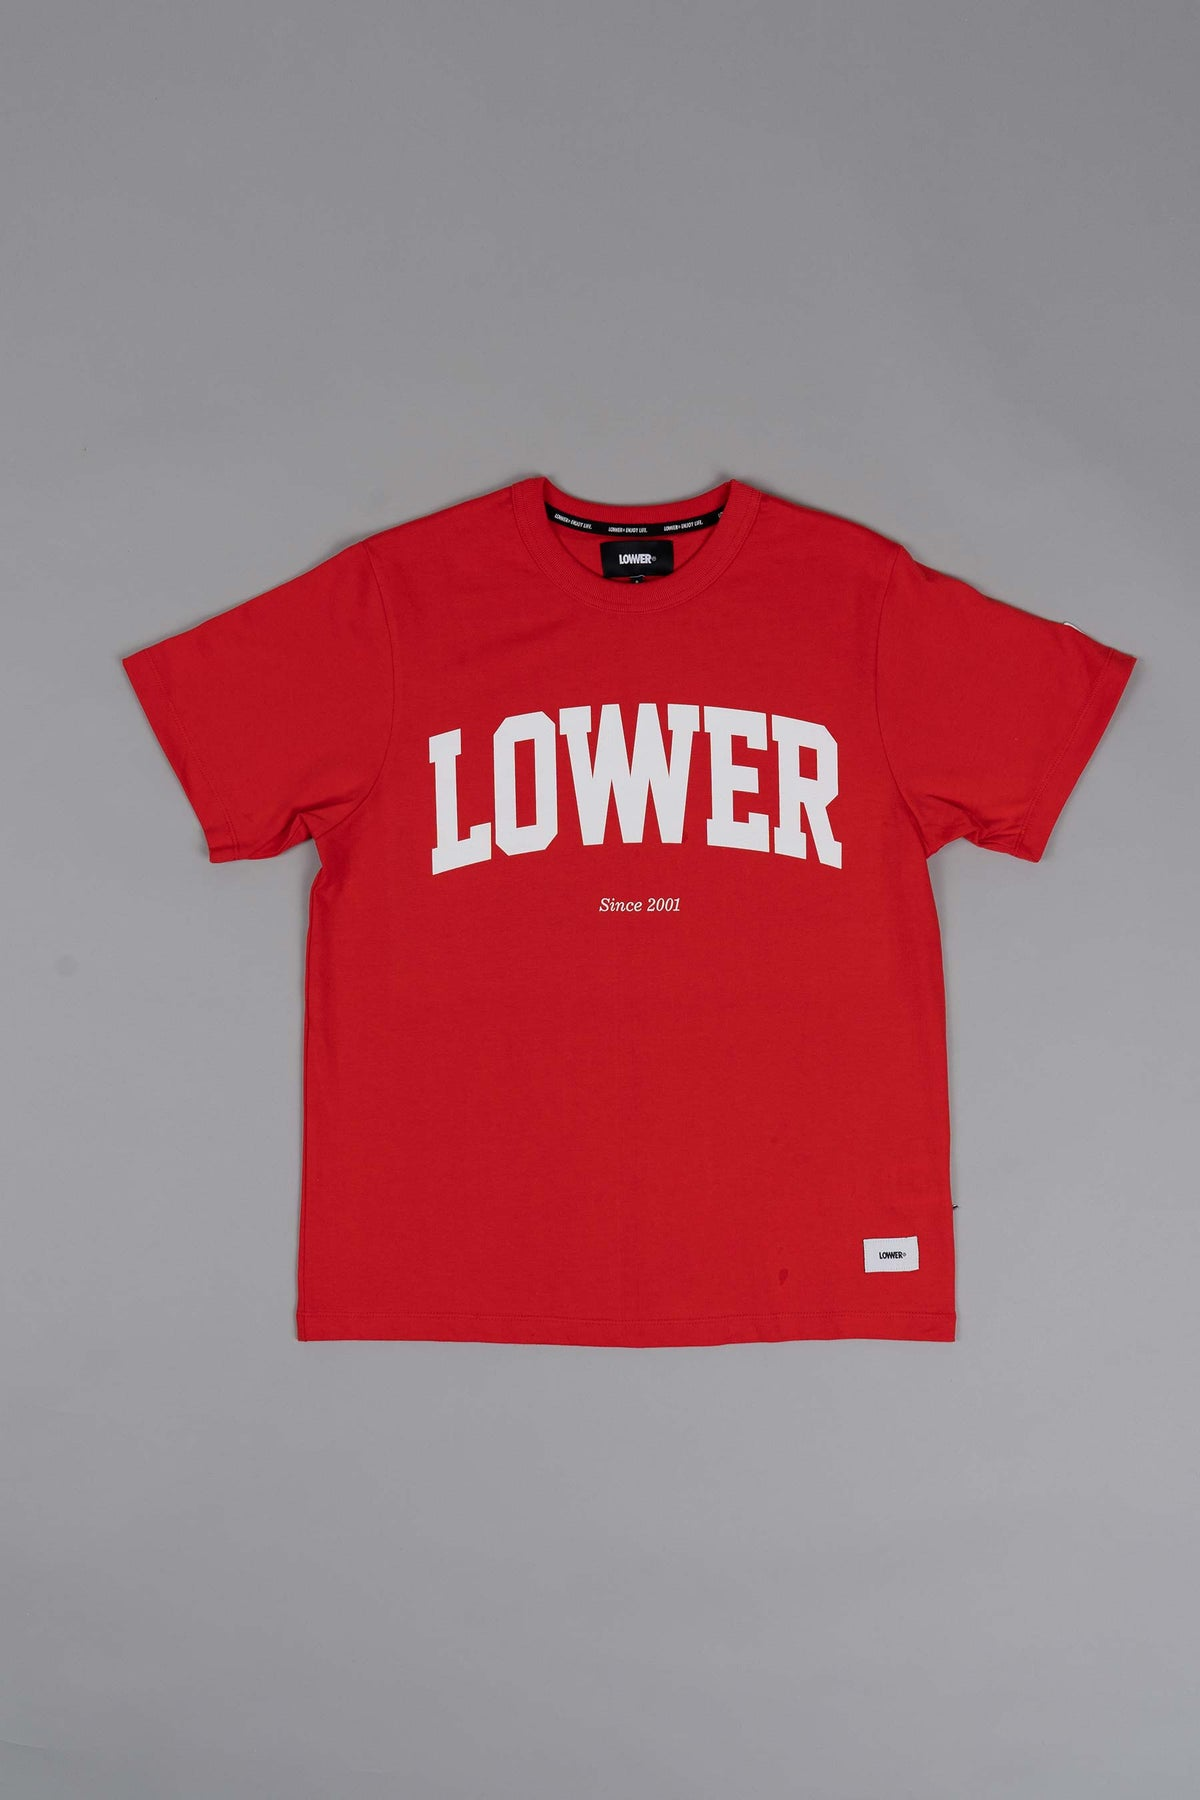 Channel Tee (Heavyweight Organic Cotton) - Since '01 - Fiesta Red